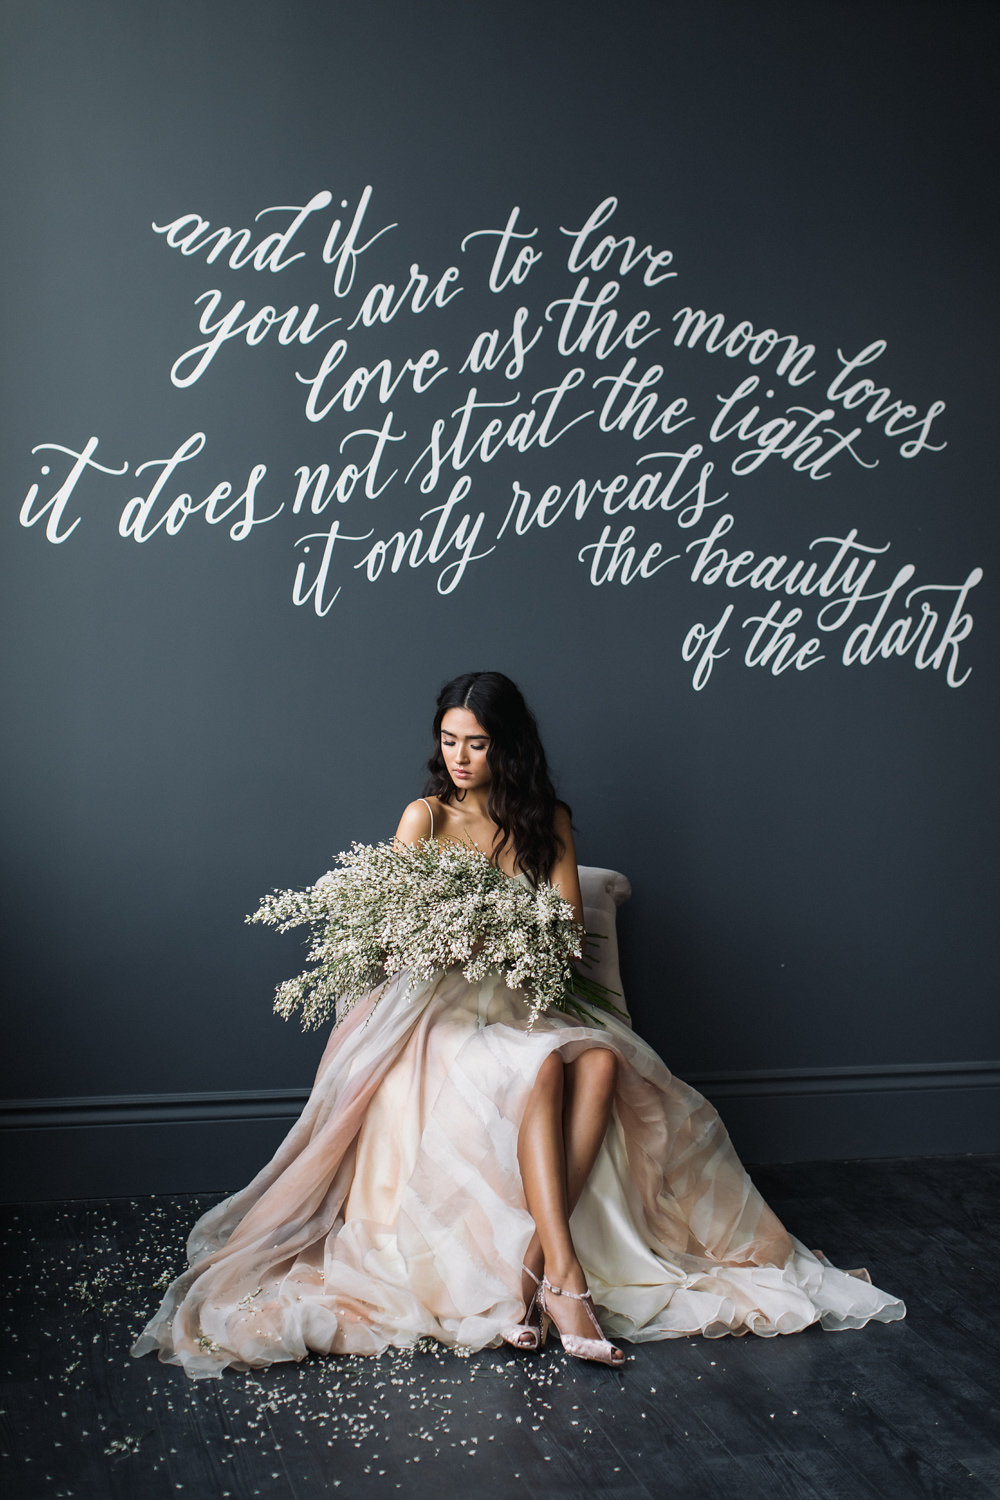 August In Bloom - Bride with flowers - Magnolia Dreams (The Bridal Affair)